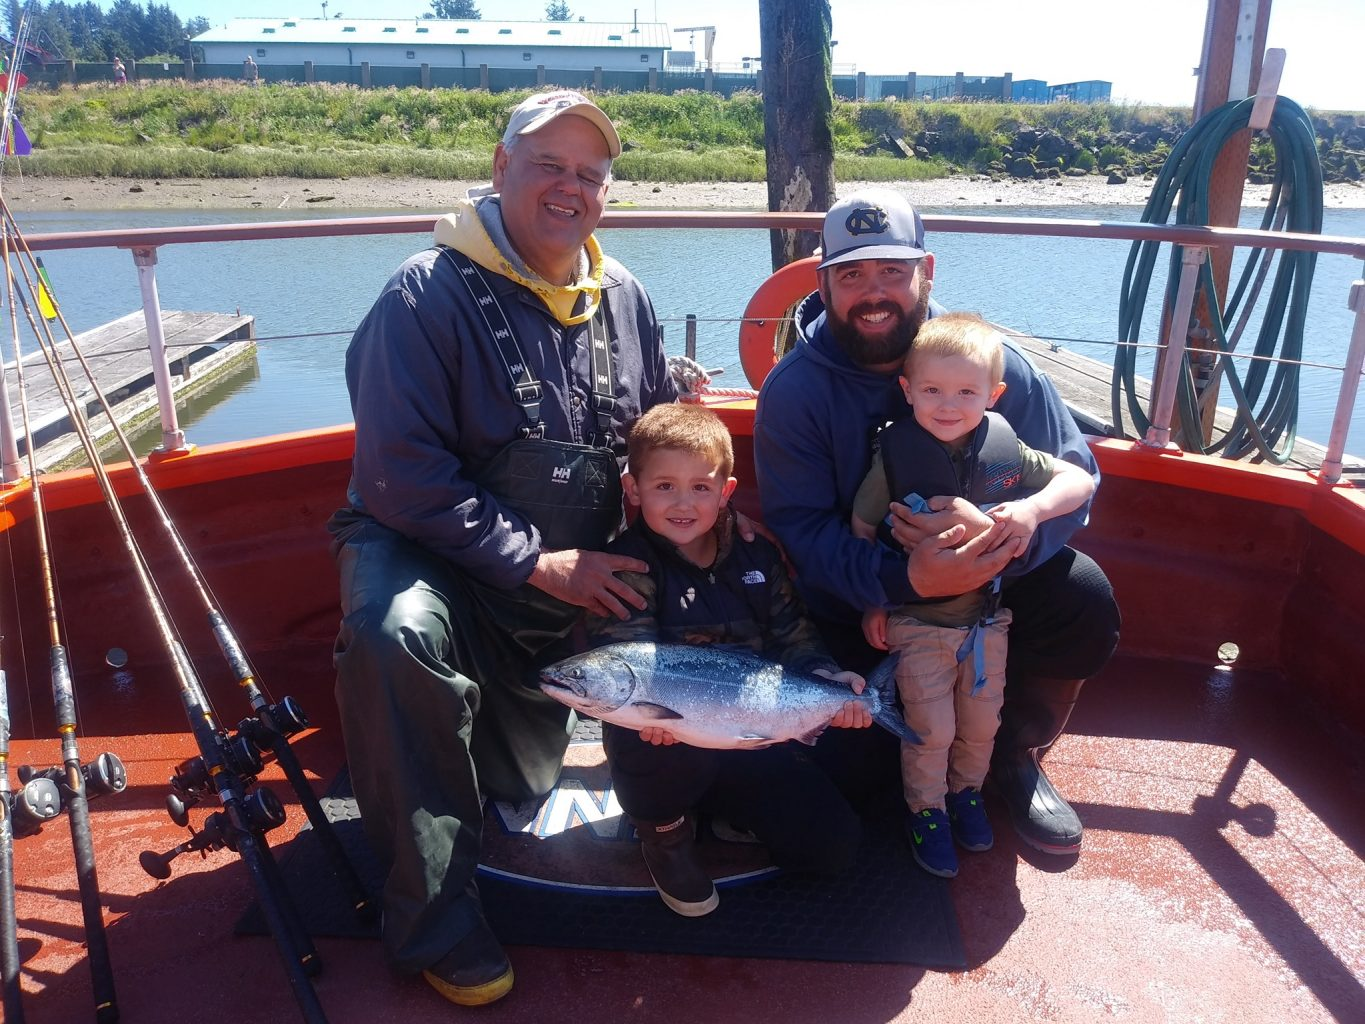 A family on a fishing boat